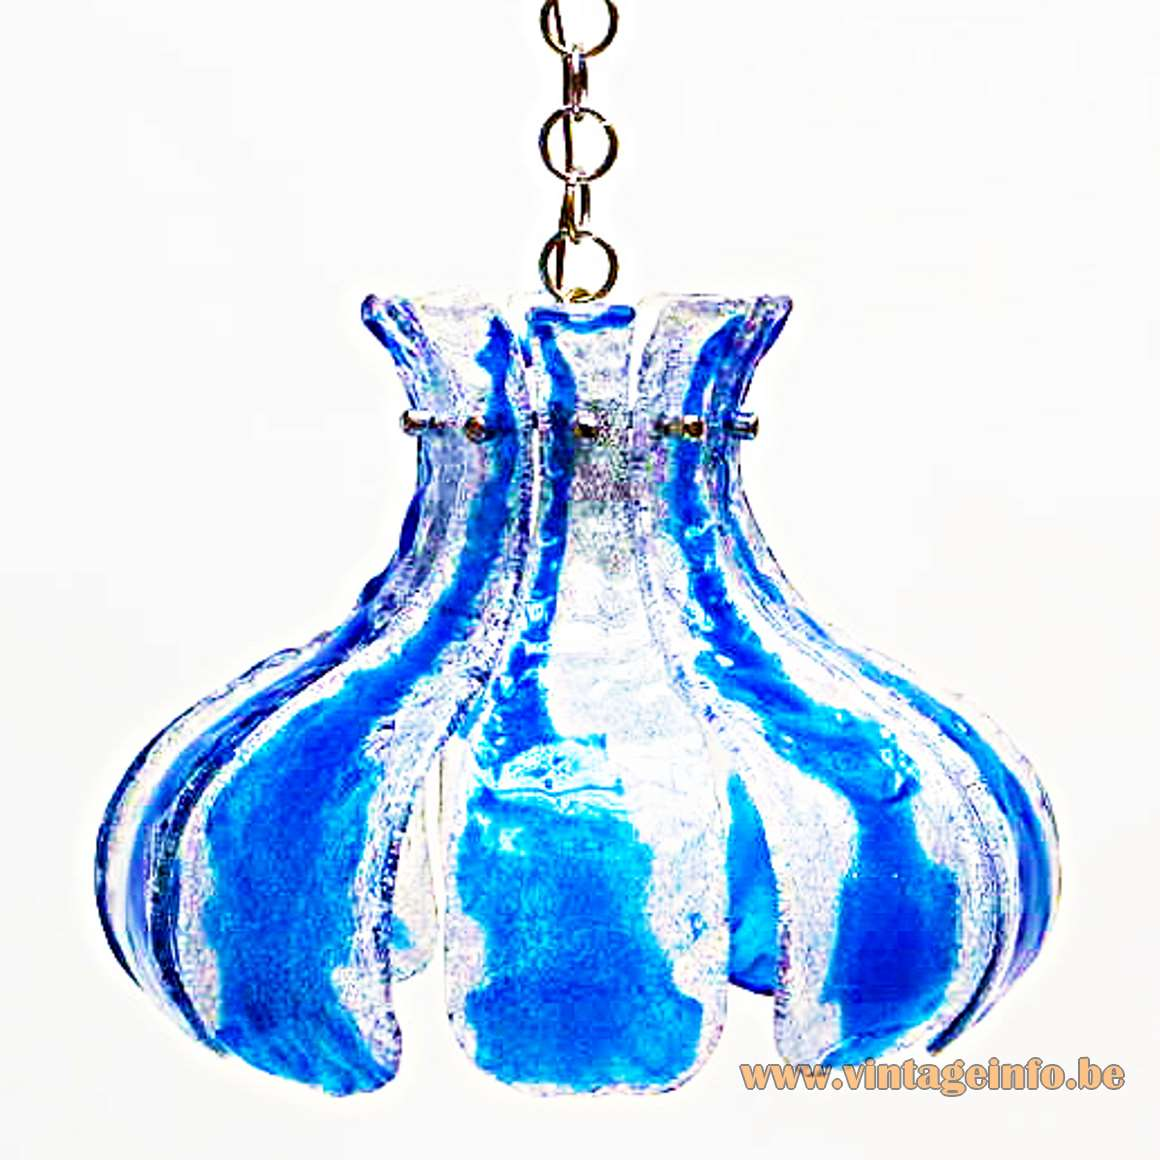 AV Mazzega Blue Crystal Chandelier - Design: Carlo Nason - Made of 10 blue and clear hand blown glass plates resting on a chromed metal frame - Produced in the 60s and 70s